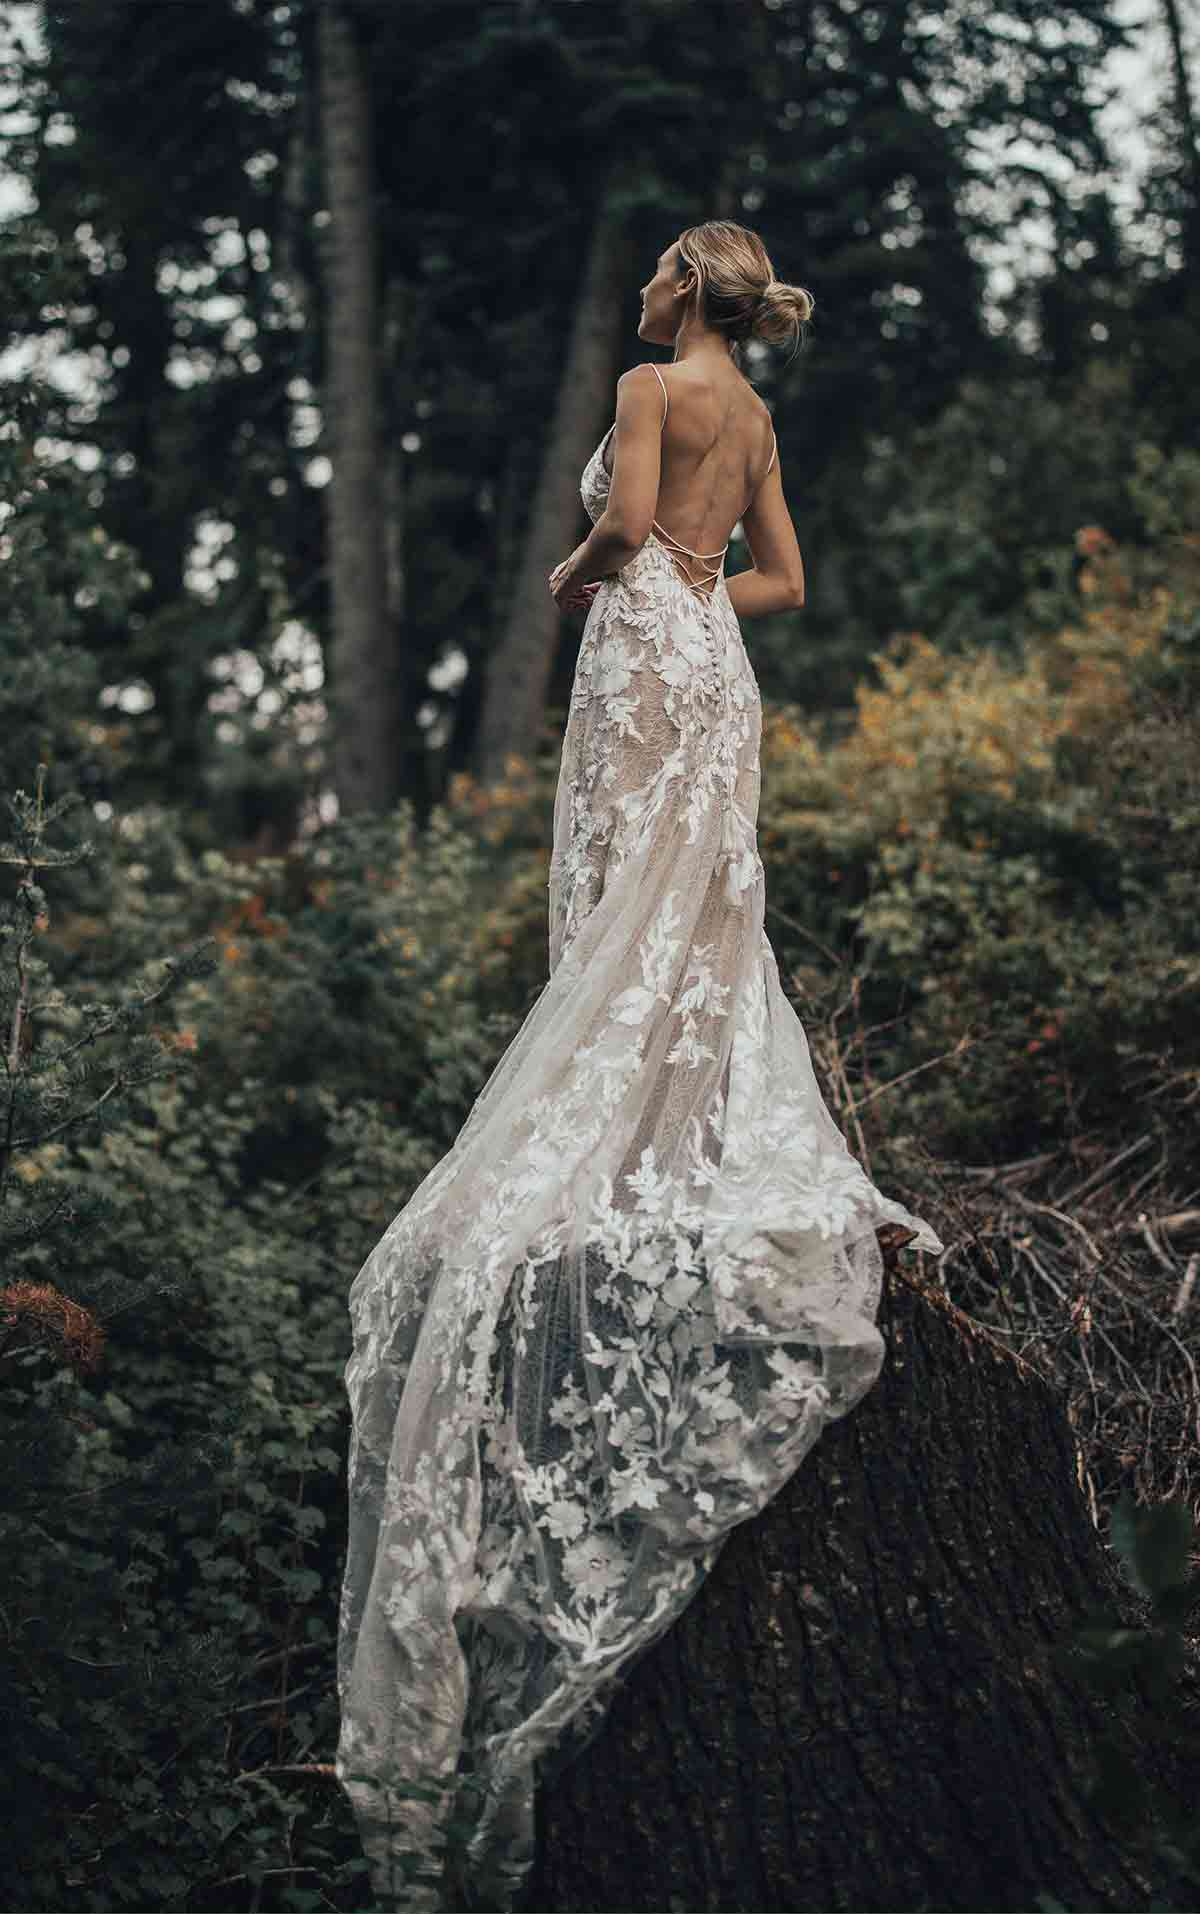 Bowie Boho Lace Wedding Dress with Embroidered Tulle and Open Back by All Who Wander